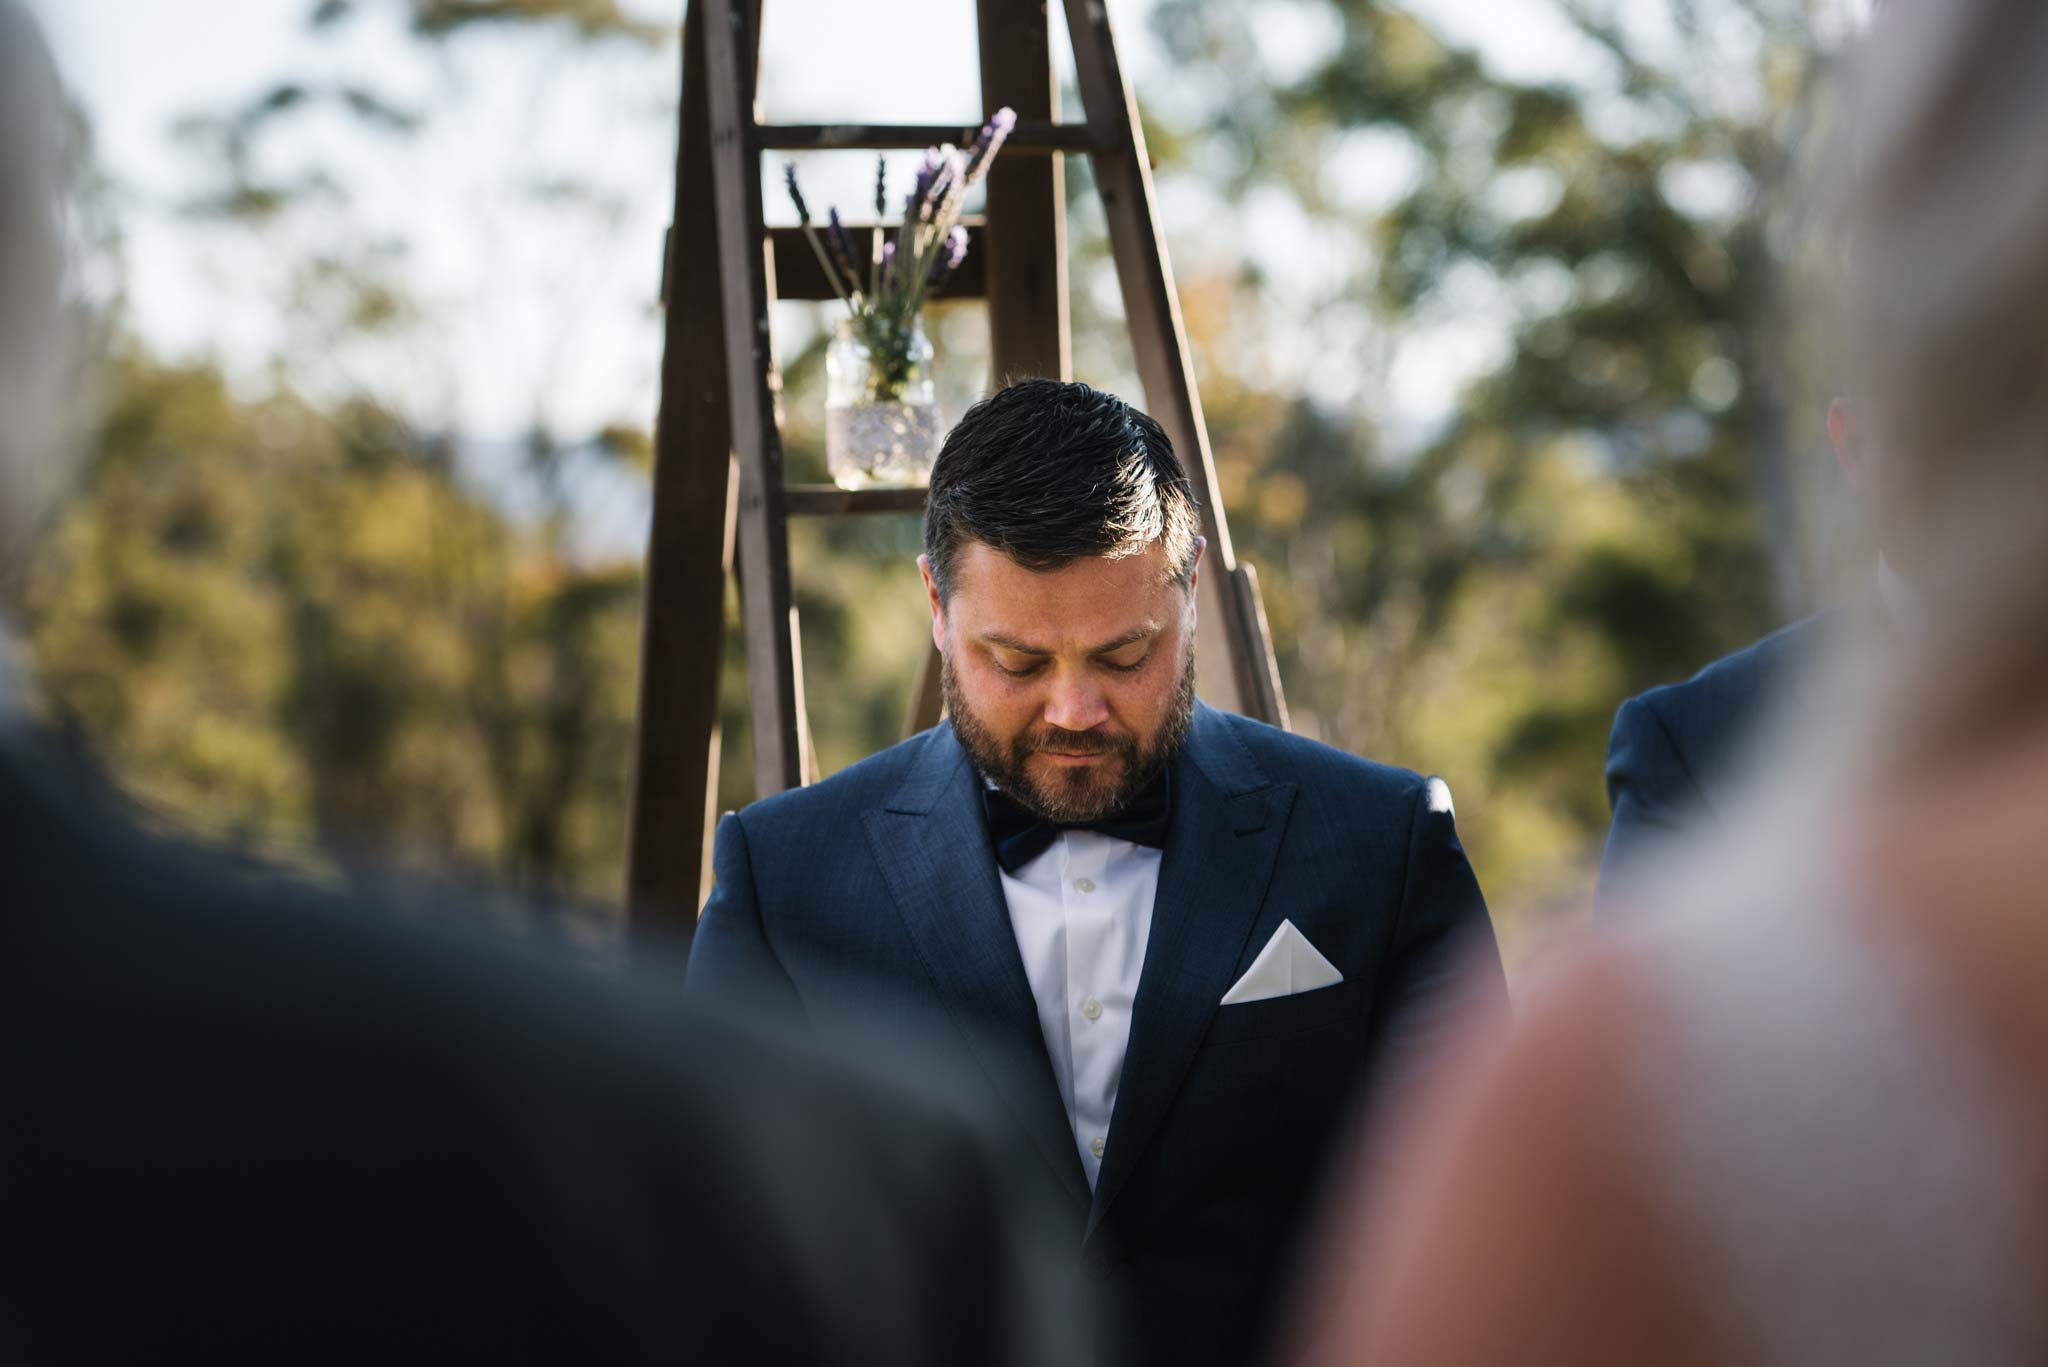 Emotional groom looks down as bride and father walk down aisle